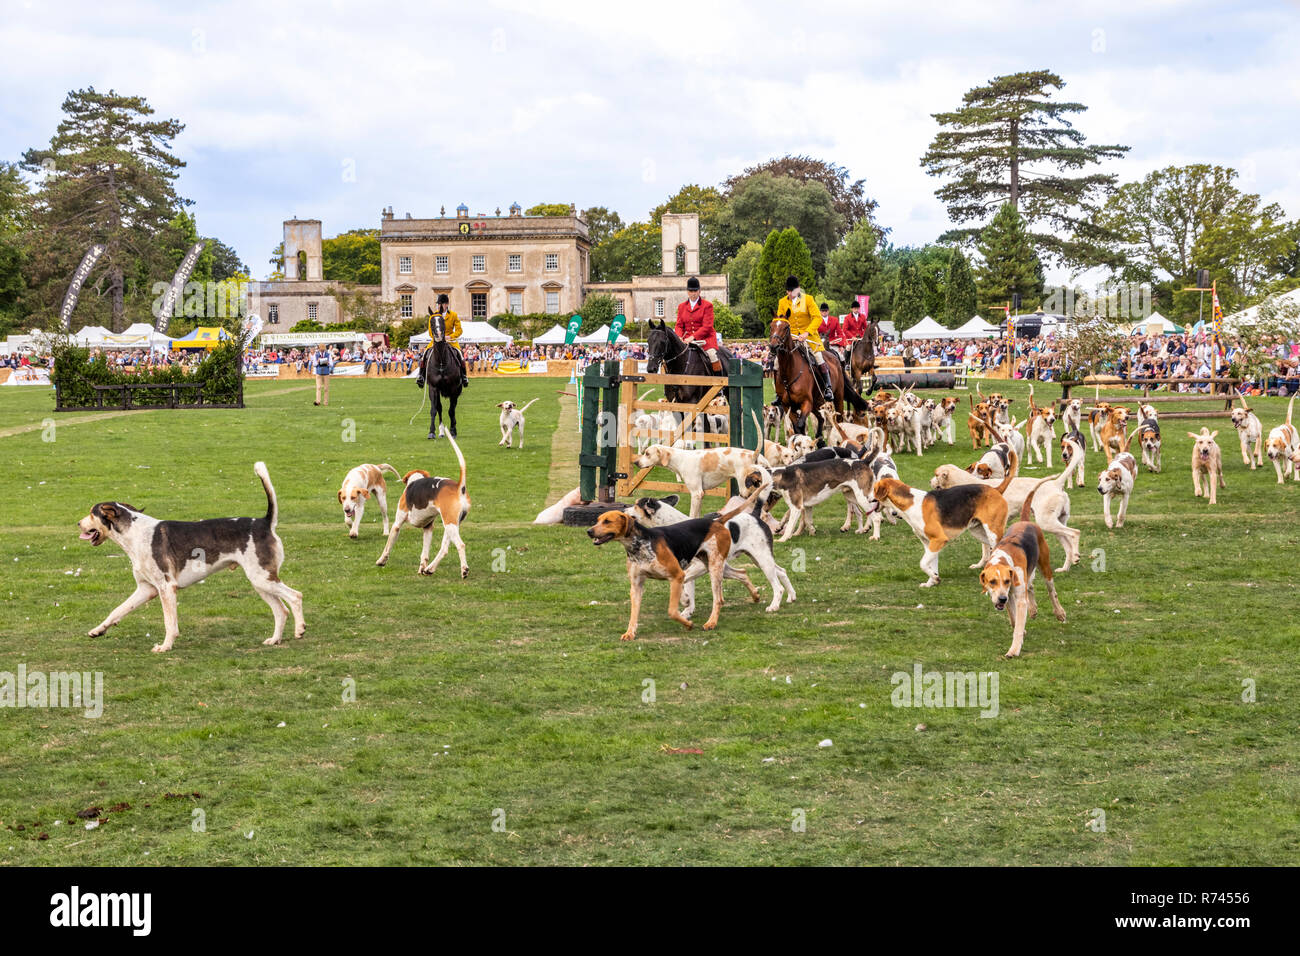 Mass Parade of Hounds at the 2018 Frampton Country Fair held at  Frampton Court, Frampton on Severn, Gloucestershire UK Stock Photo